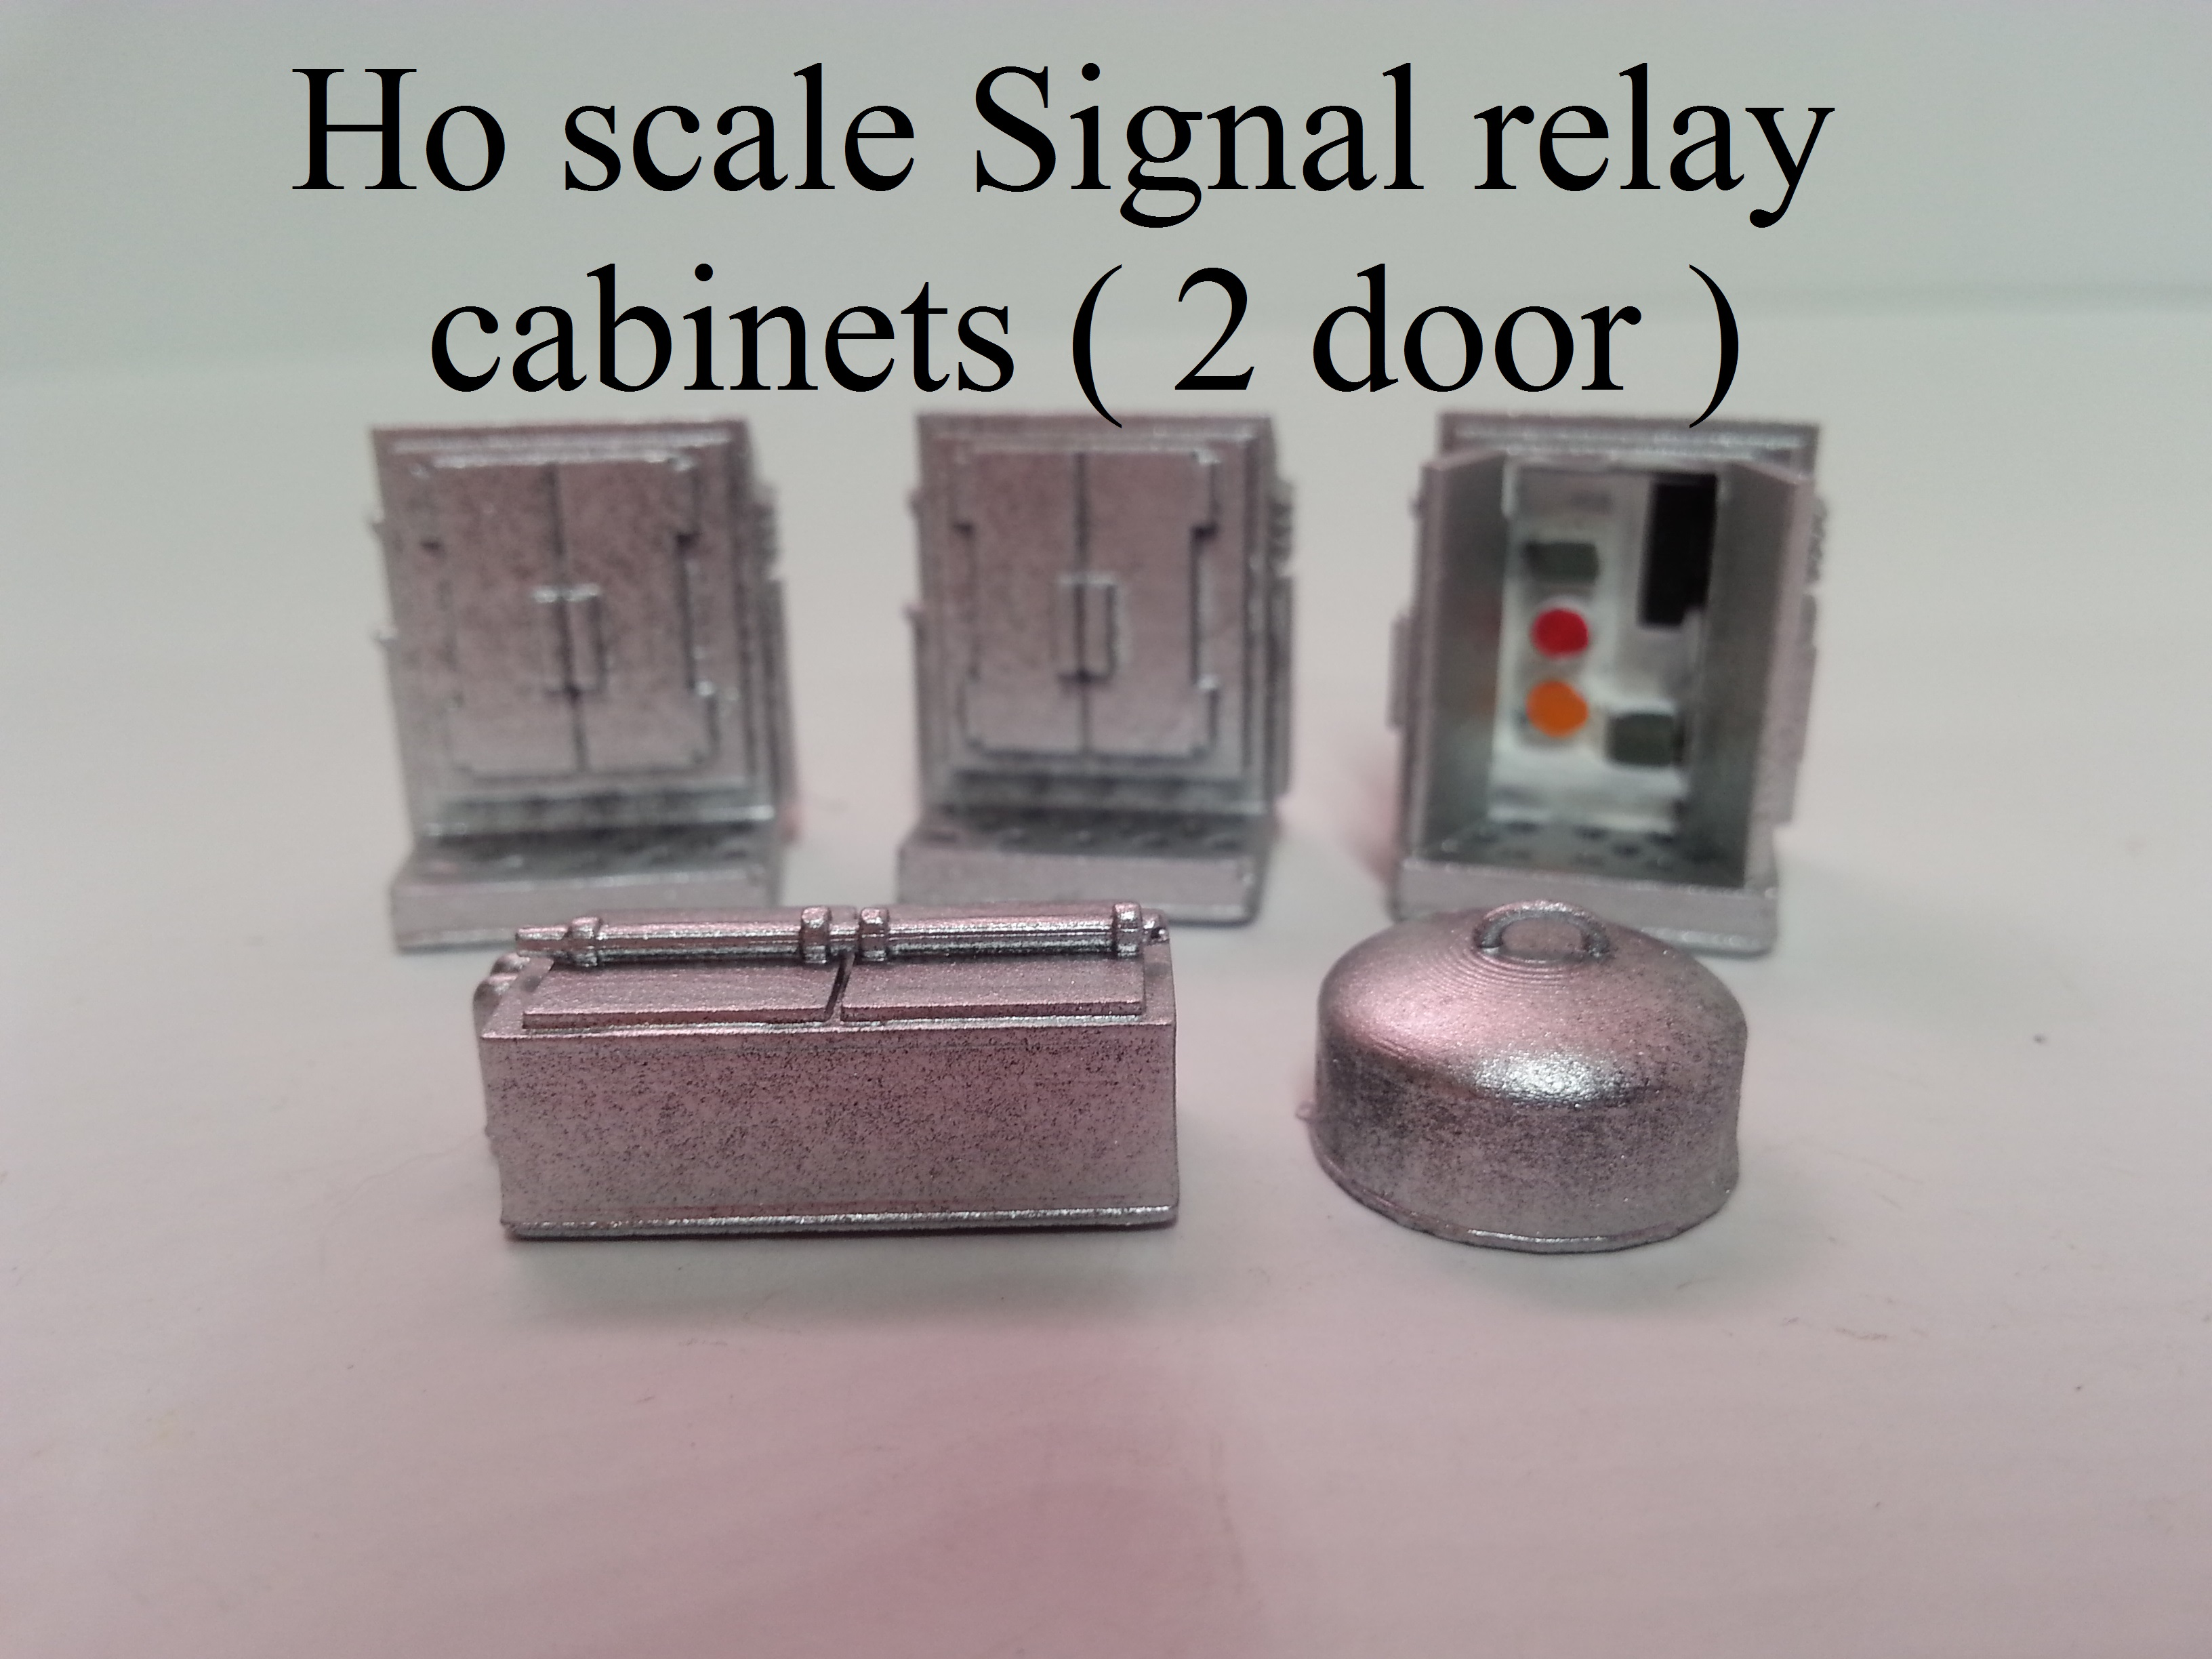 Ho scale Signal relay cabinets ( 2 door )